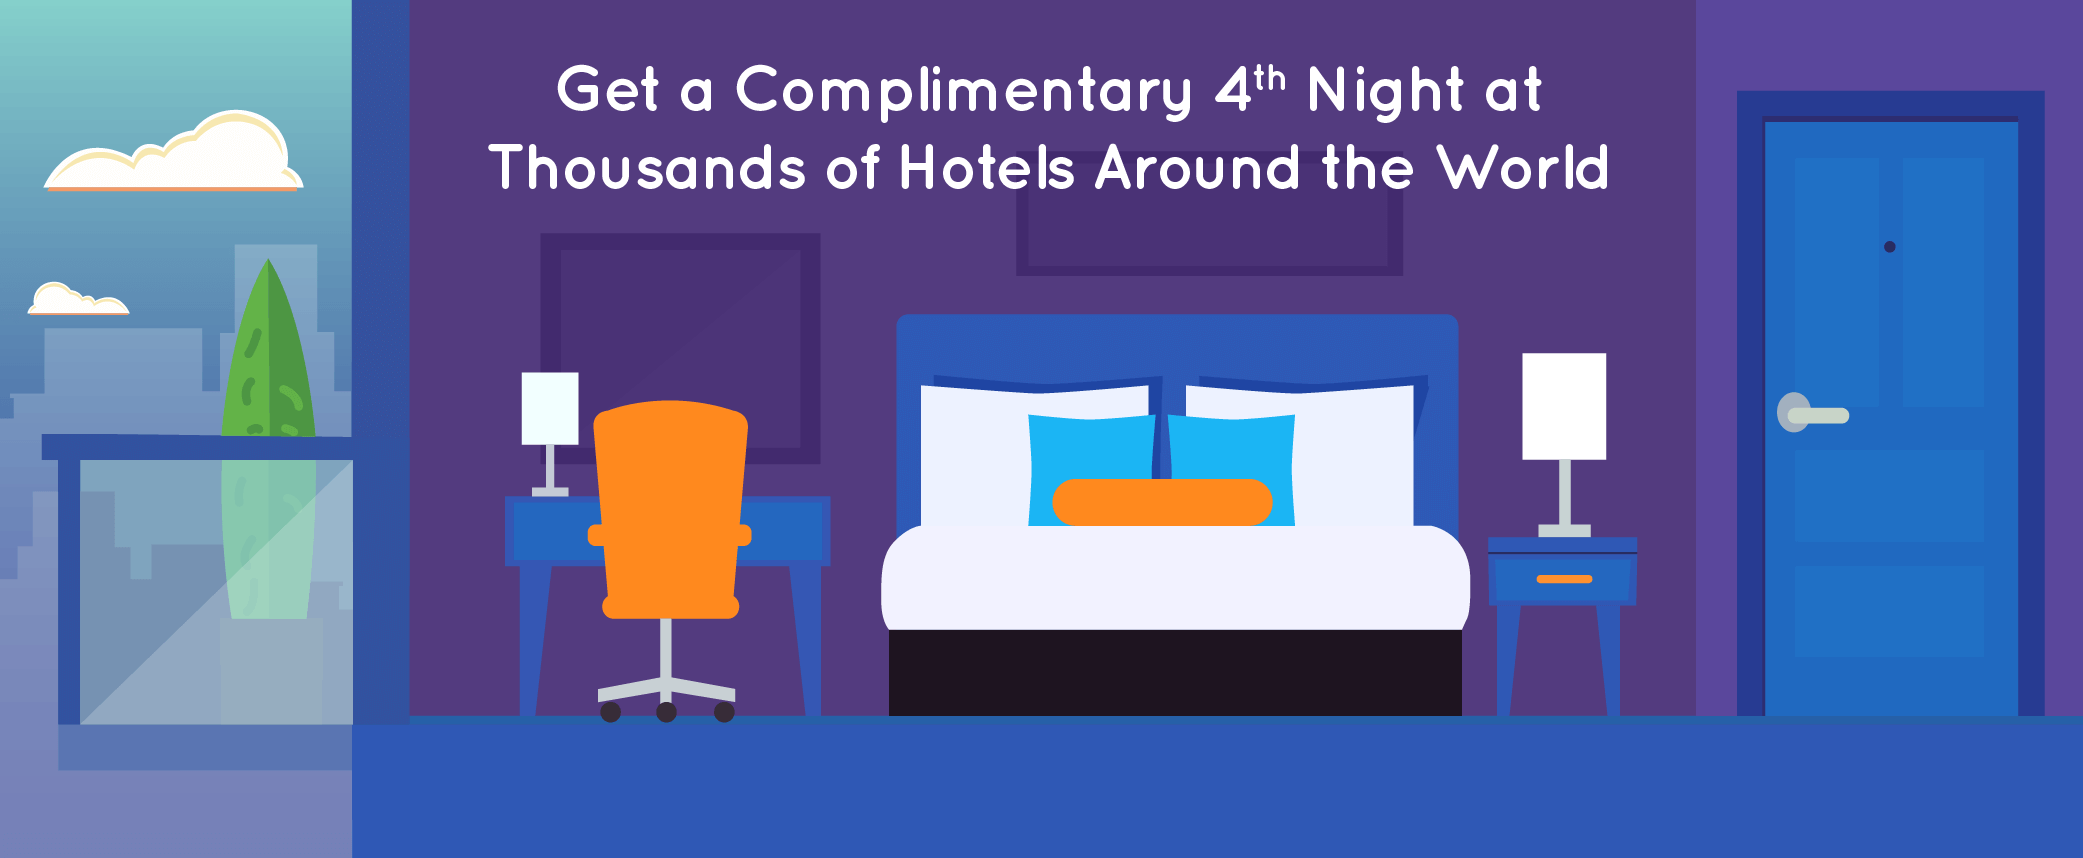 Get a Complimentary 4th Night